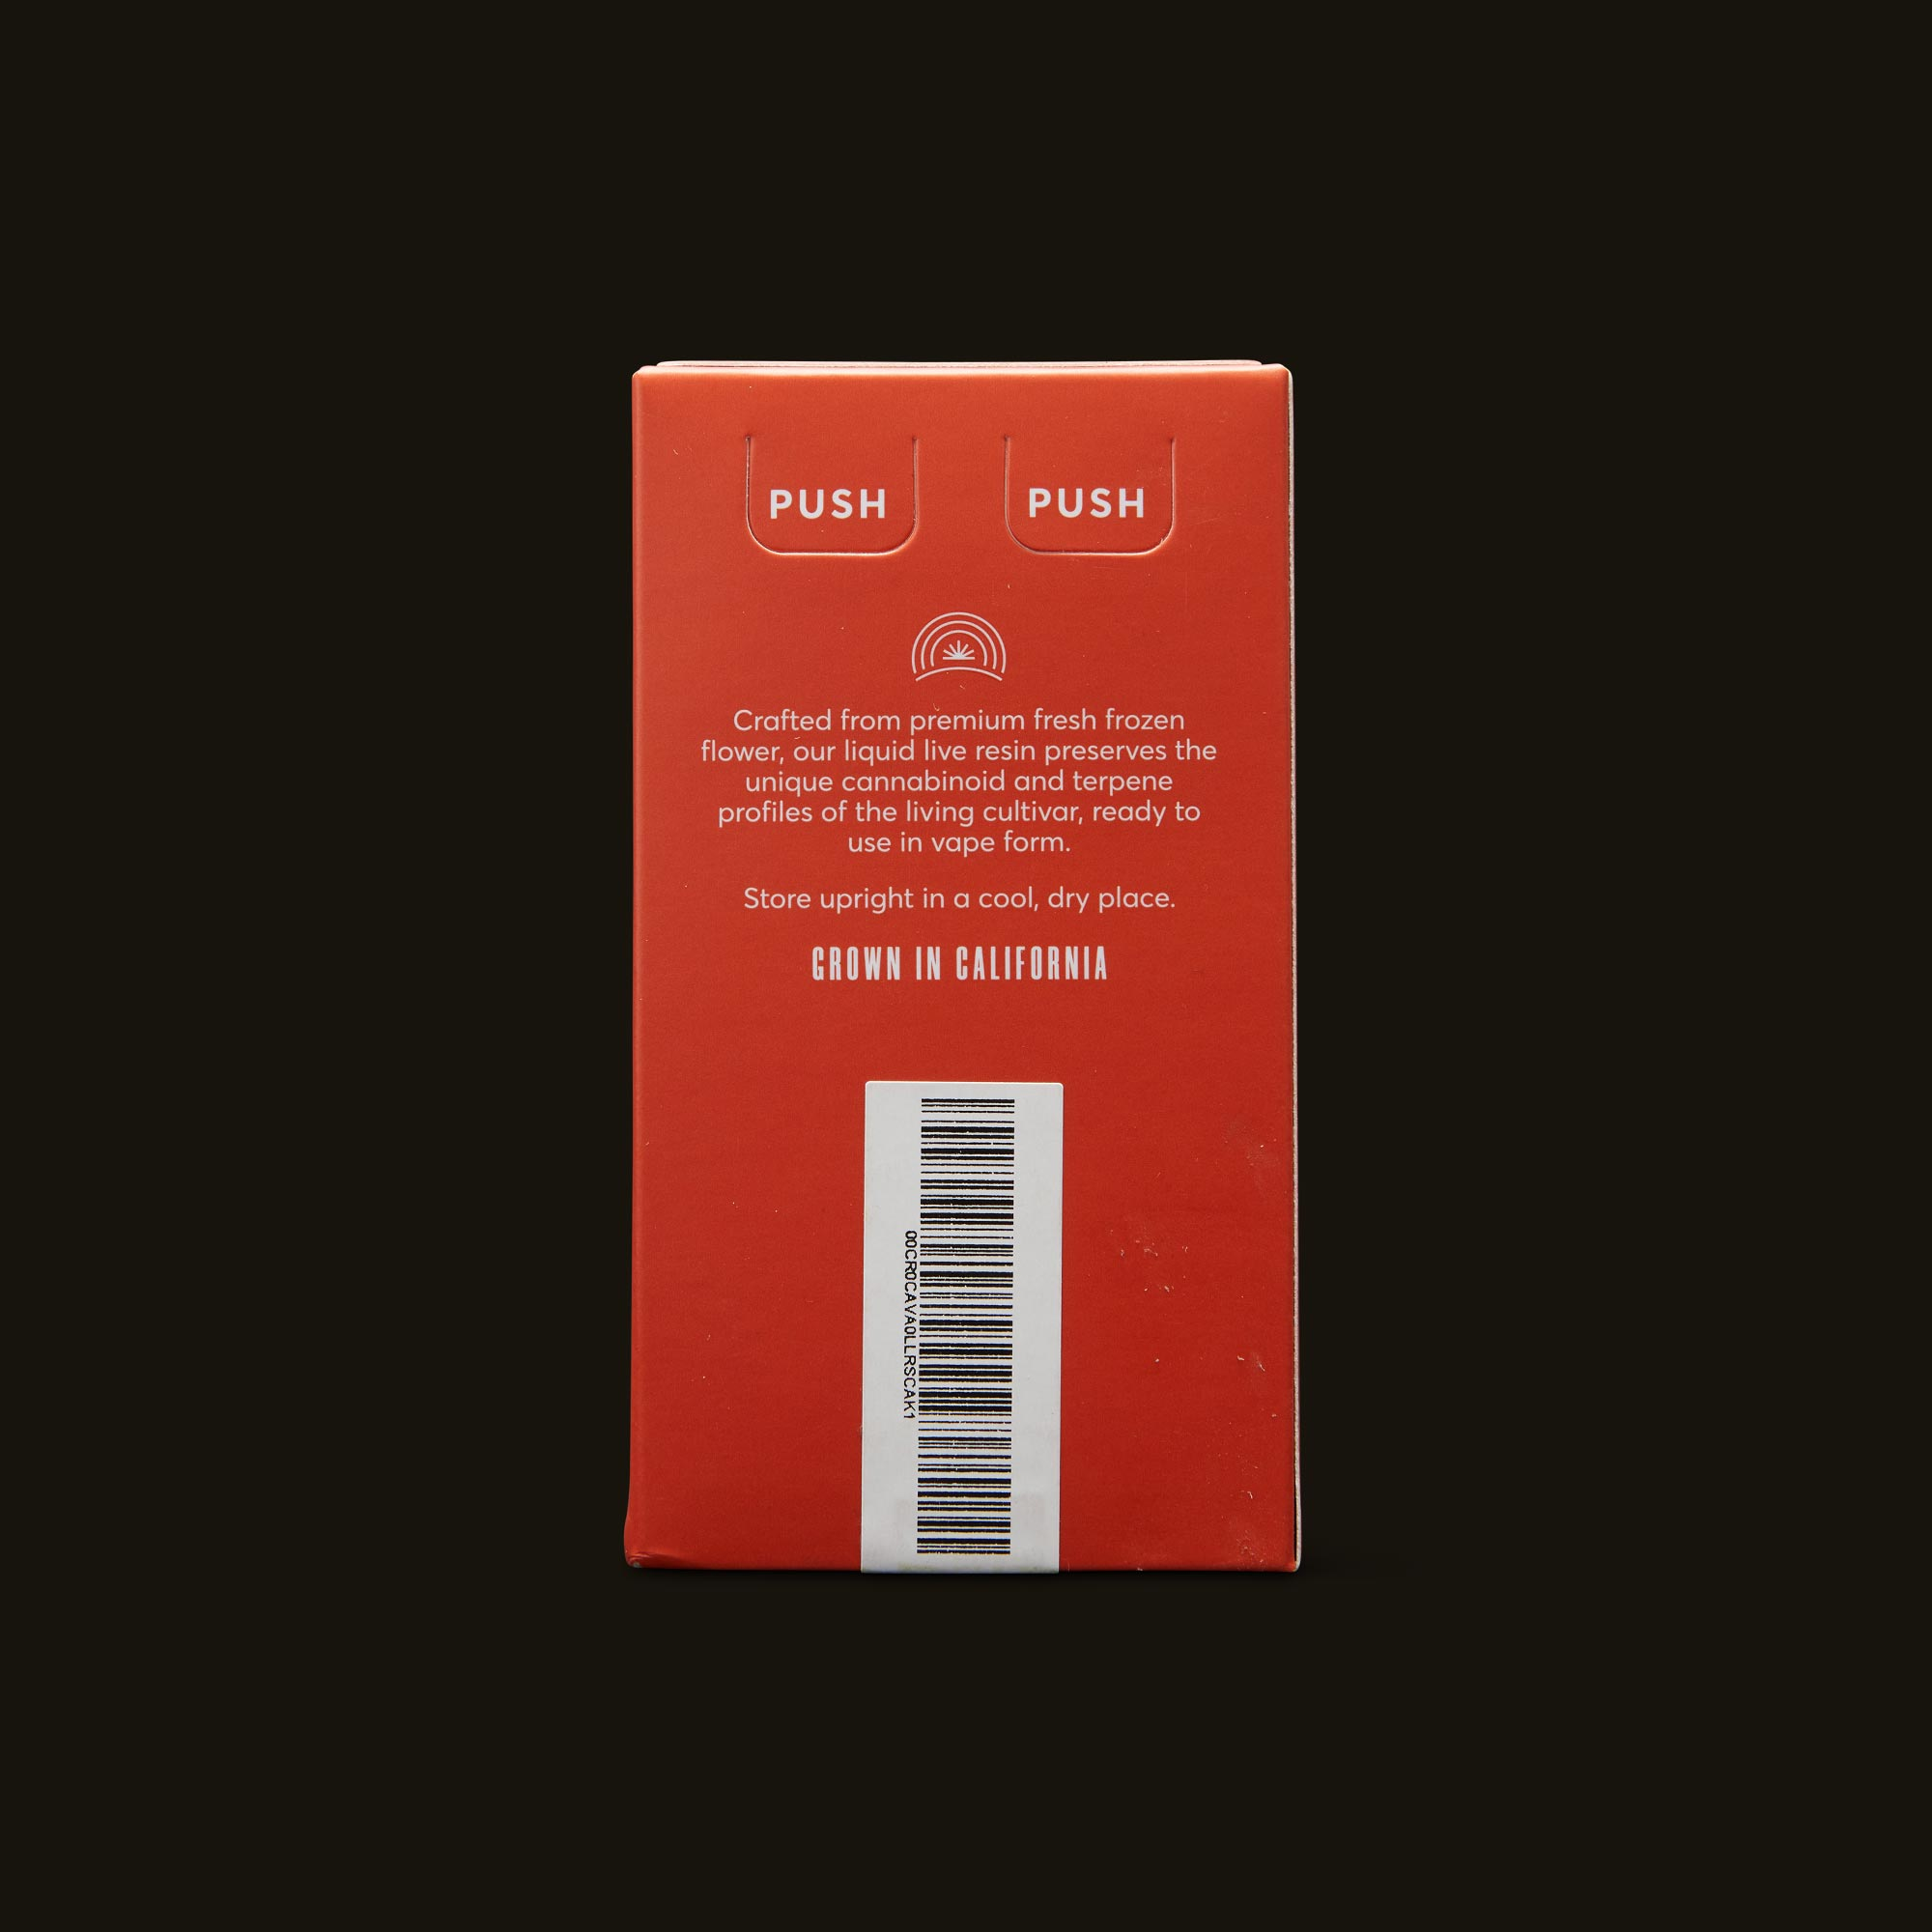 Cresco Cherry AK Liquid Live Resin Cartridge Back Packaging